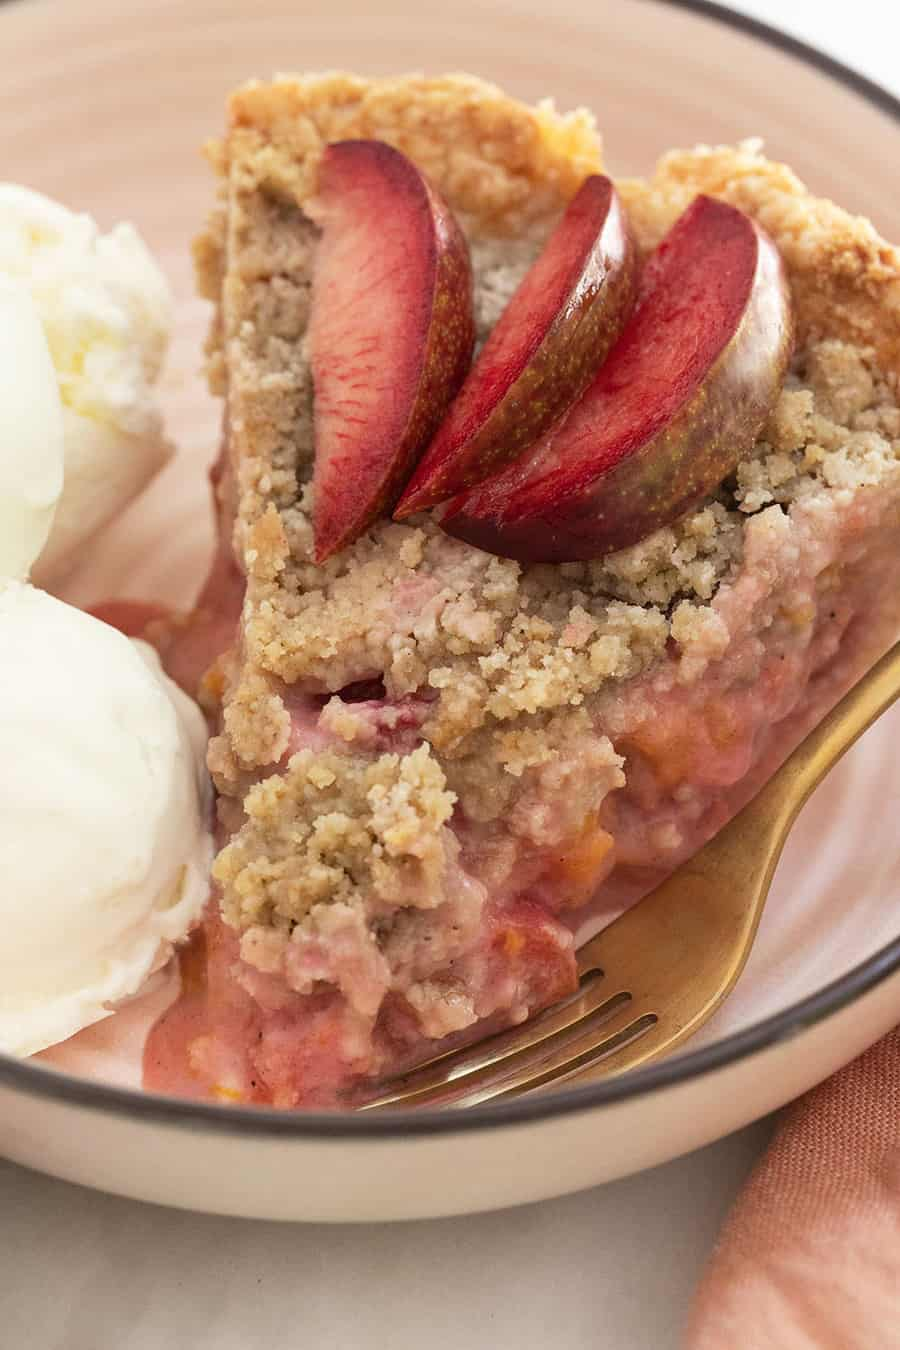 Plumcot and aprium pie with crumble top and sliced plumcots.